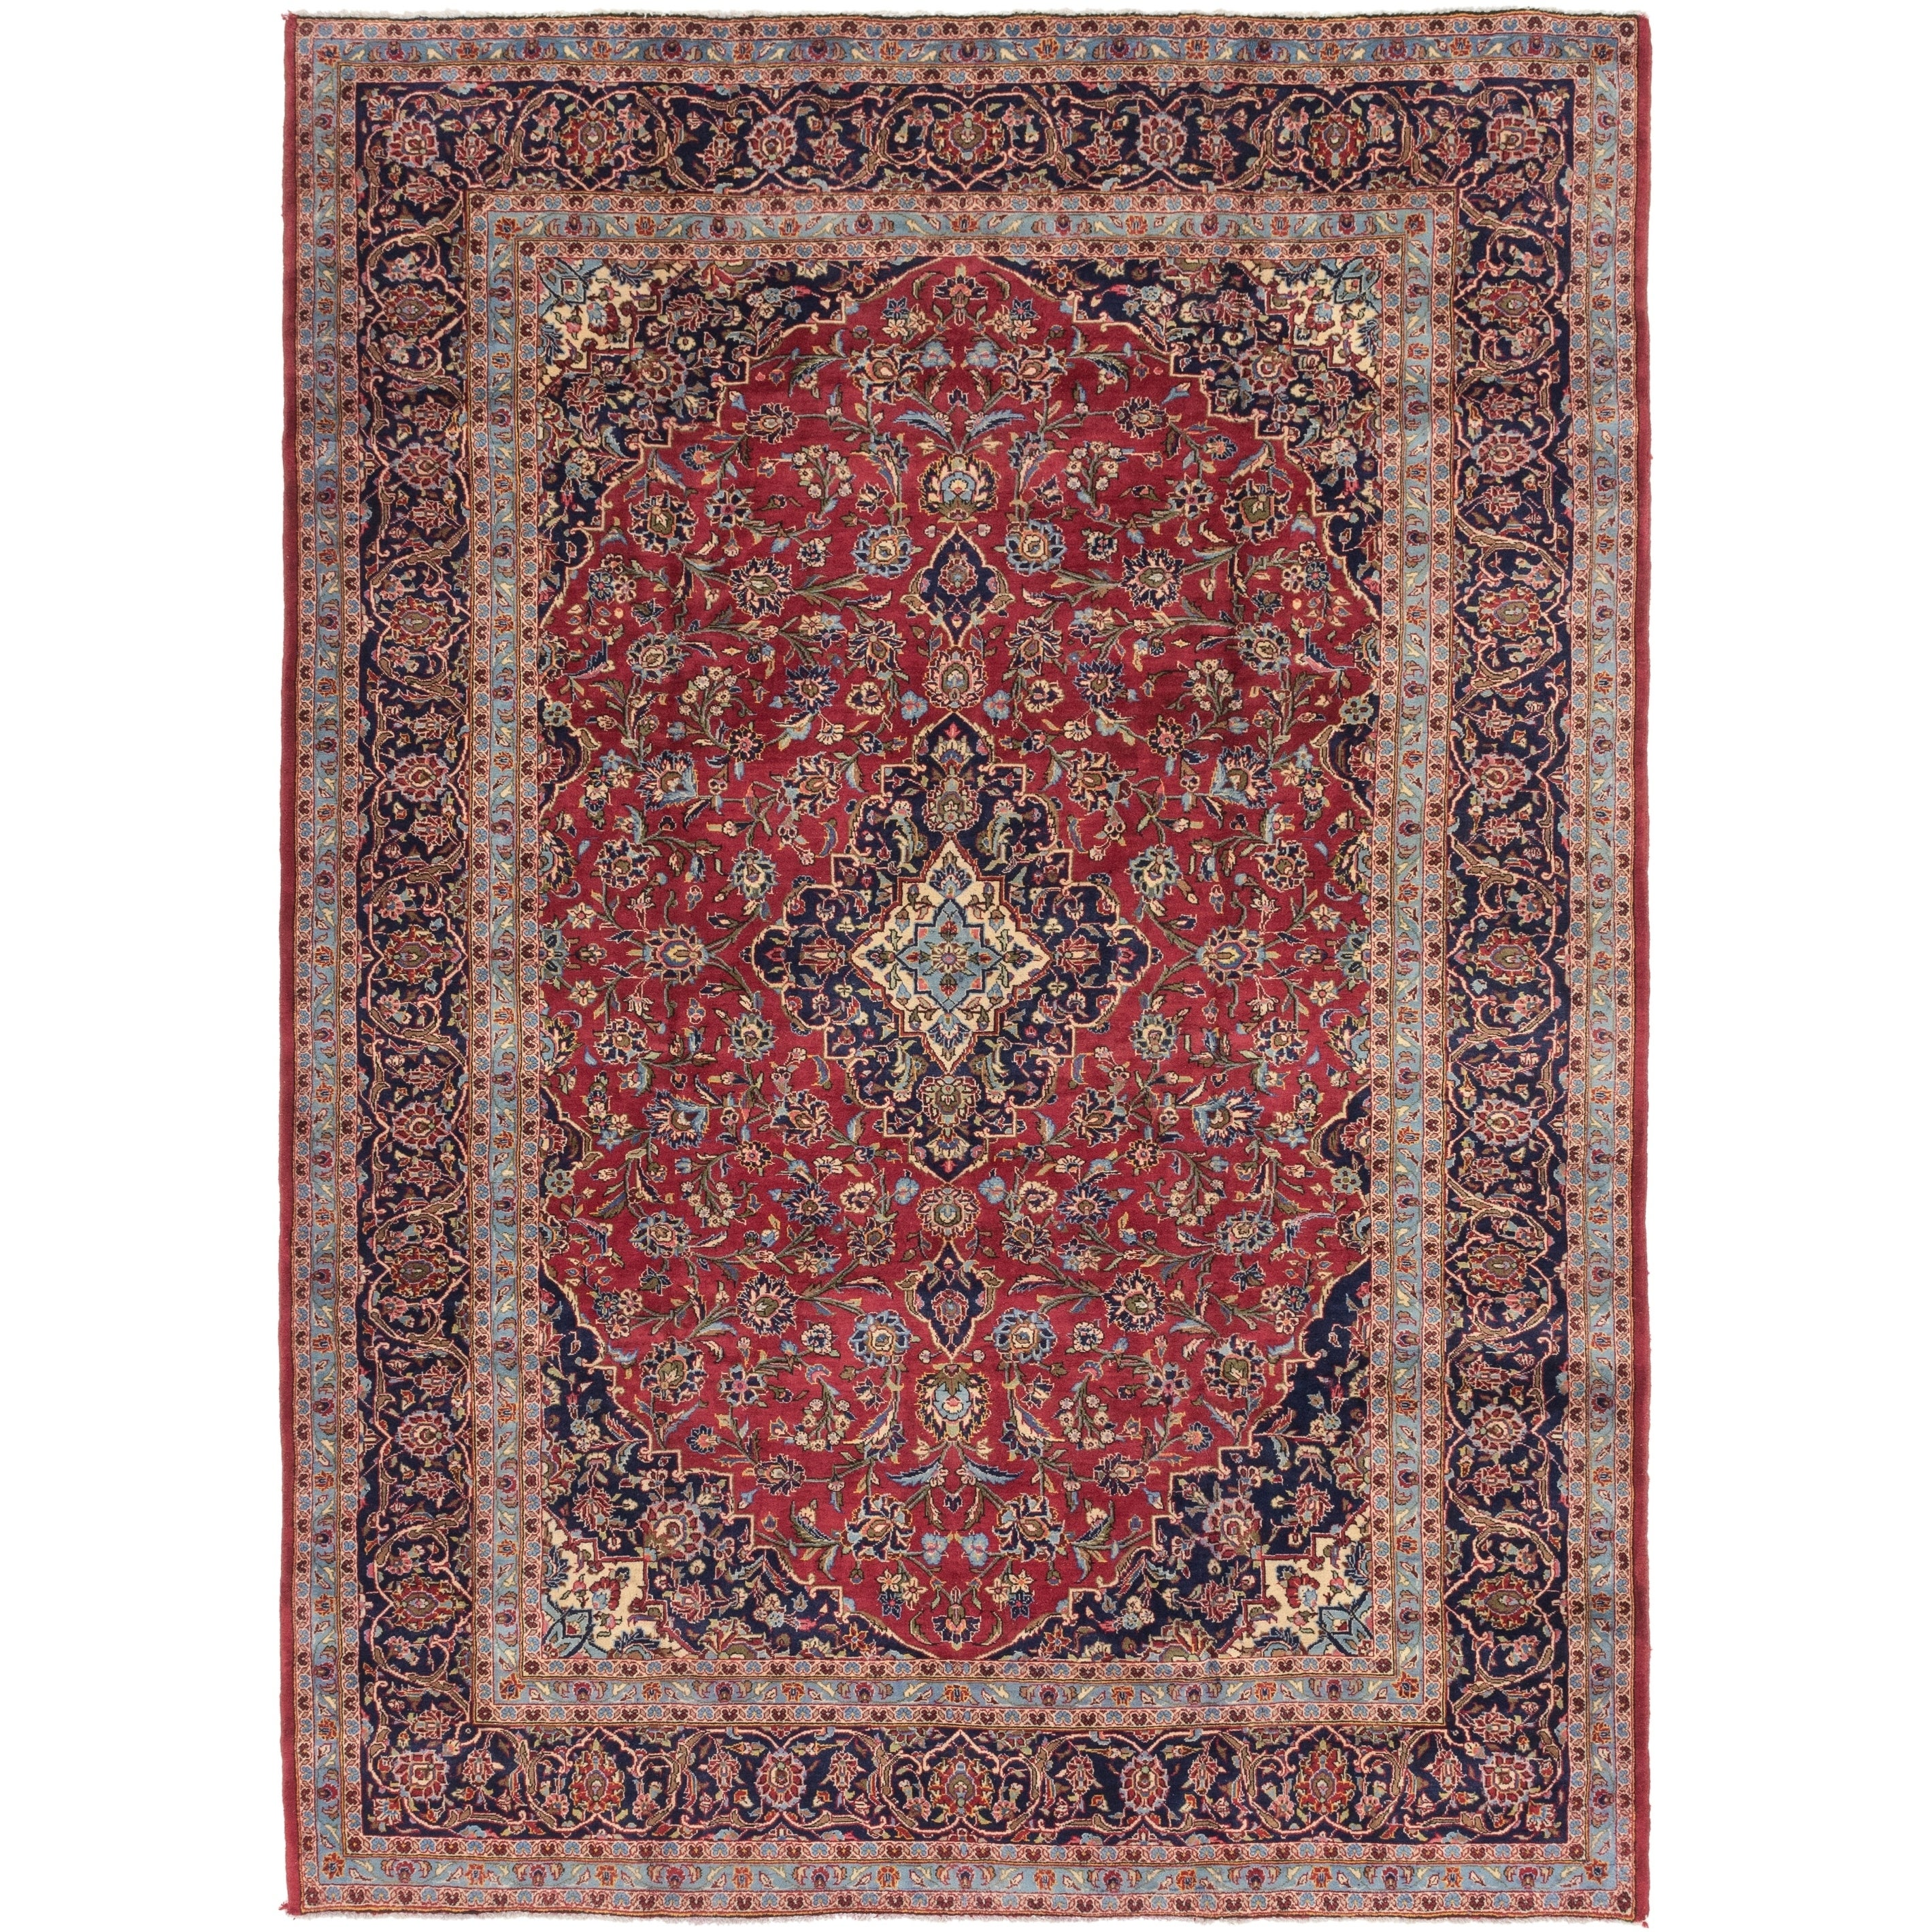 Hand Knotted Kashan Wool Area Rug - 8 2 x 11 4 (Red - 8 2 x 11 4)